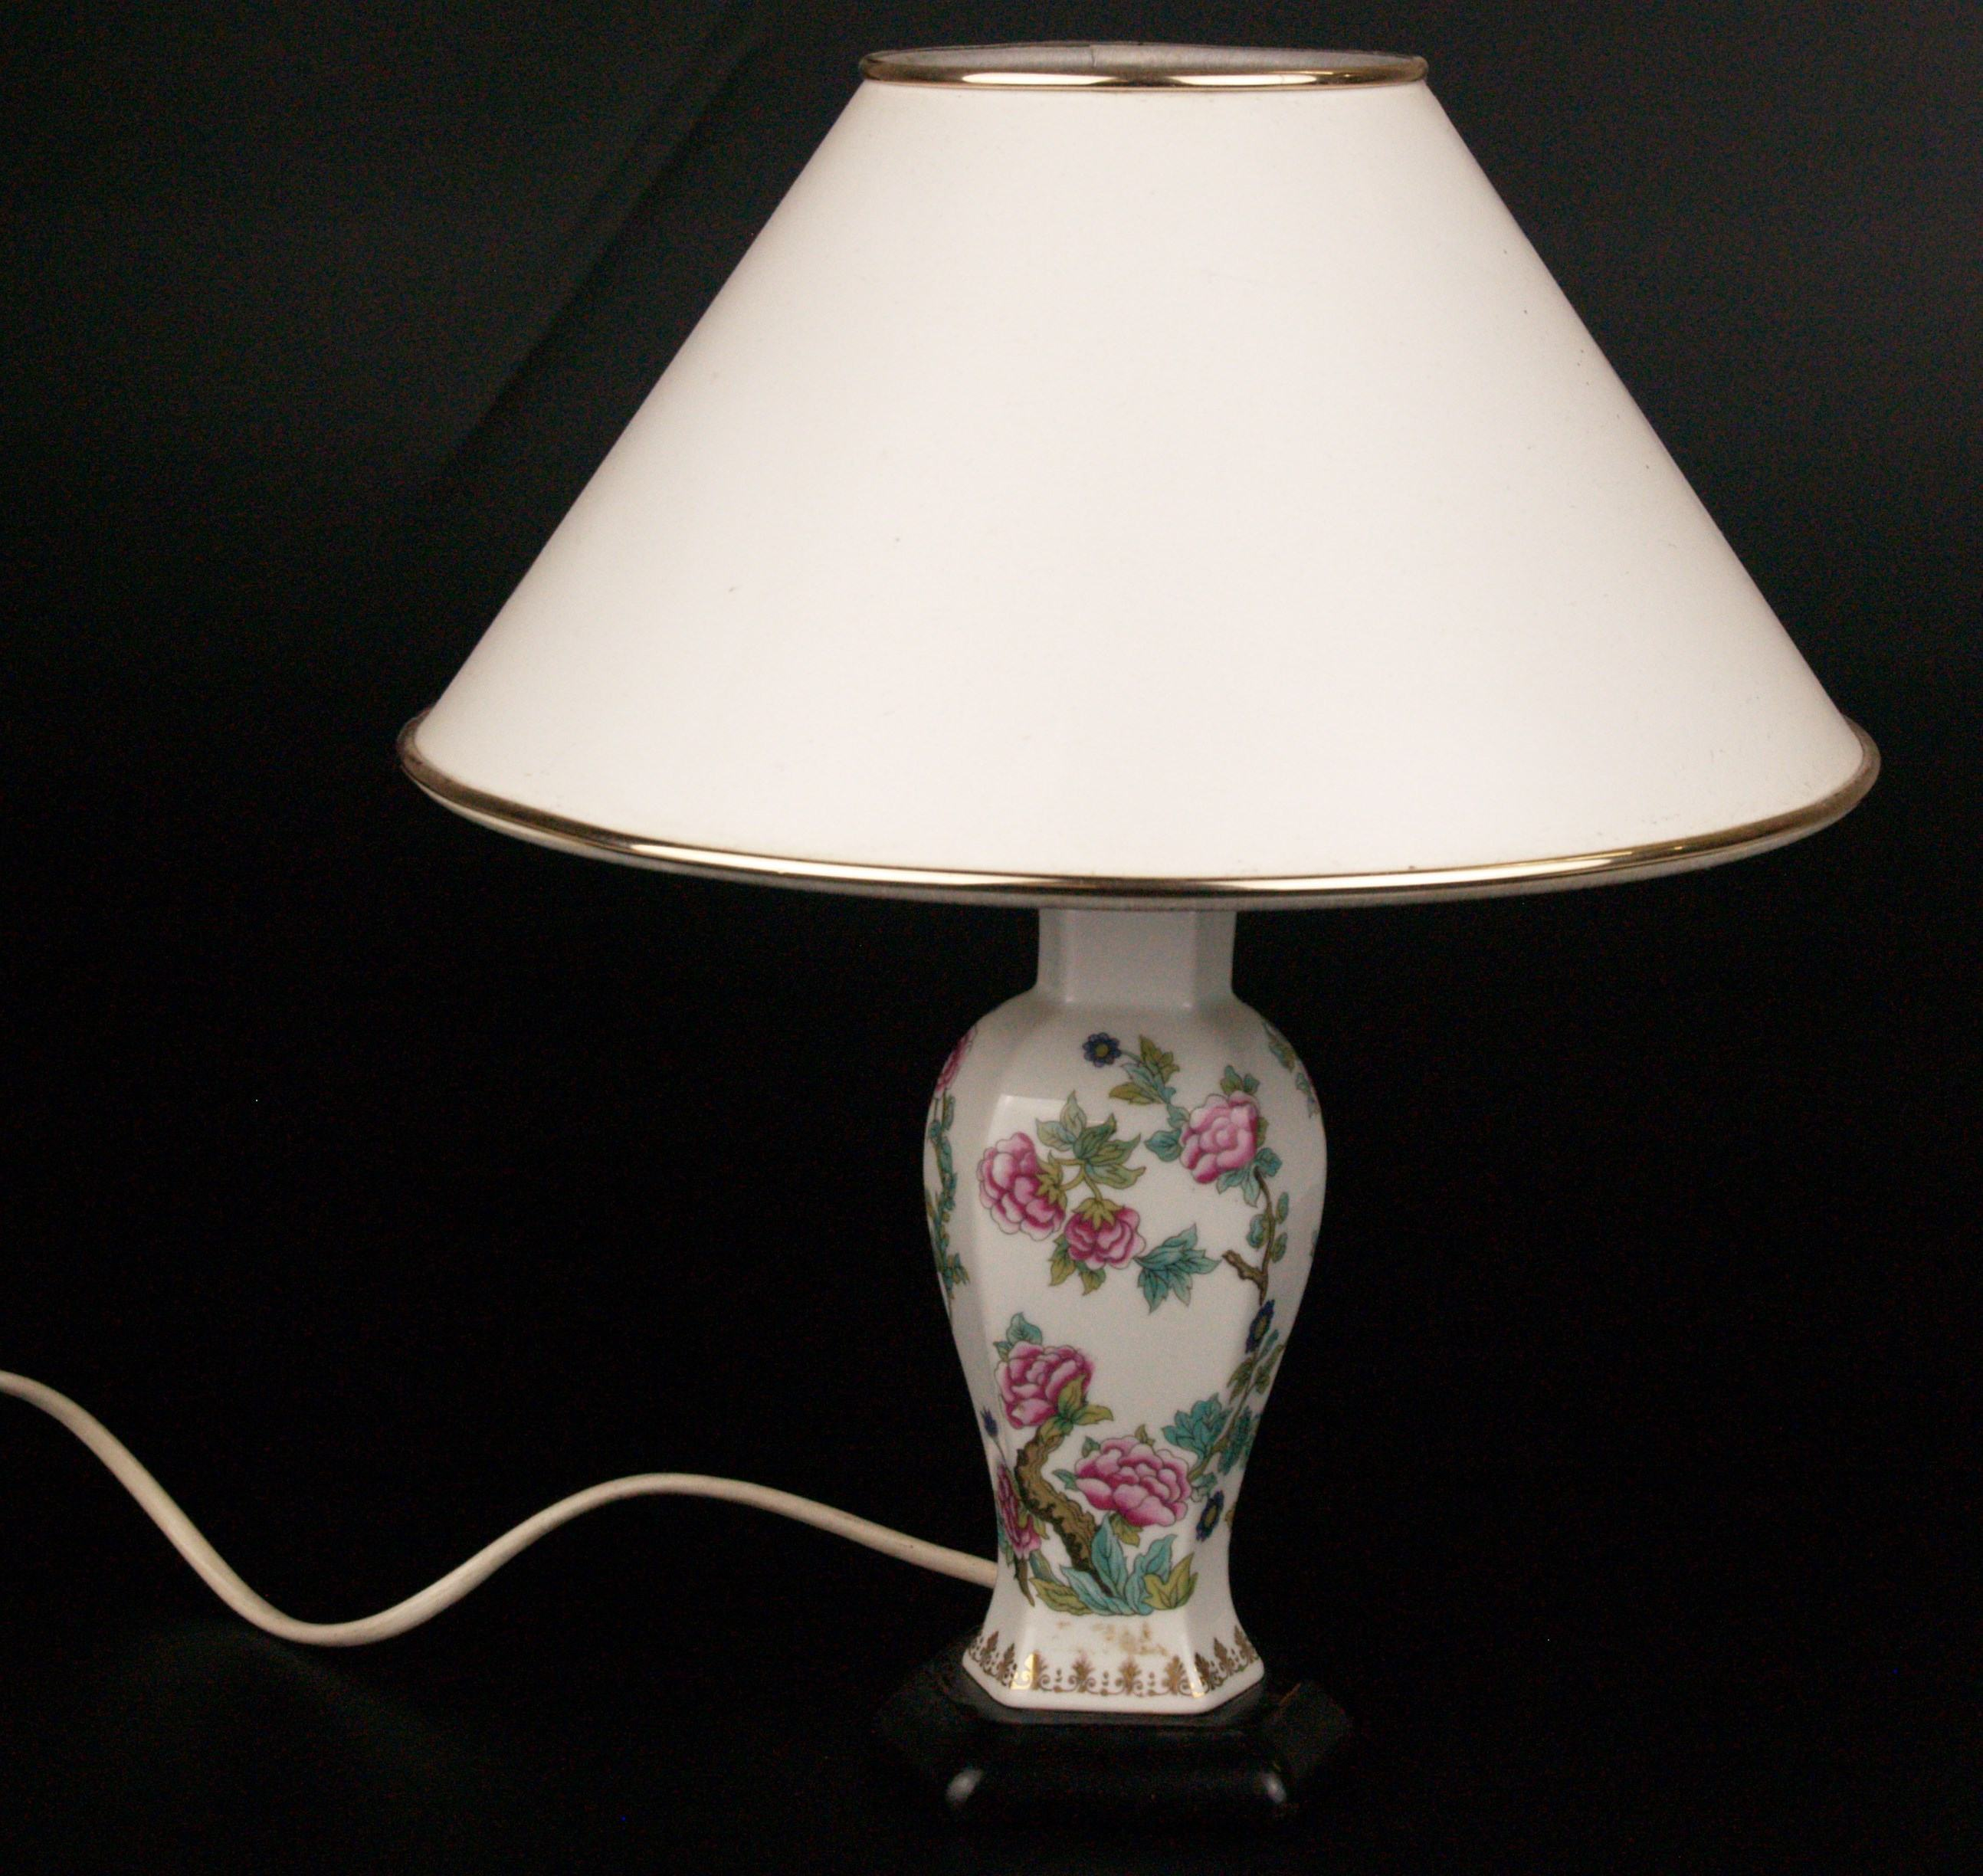 Kleine Tischlampe Limoges Tischlampe Lighting Lamps Table Lamps Auctionet